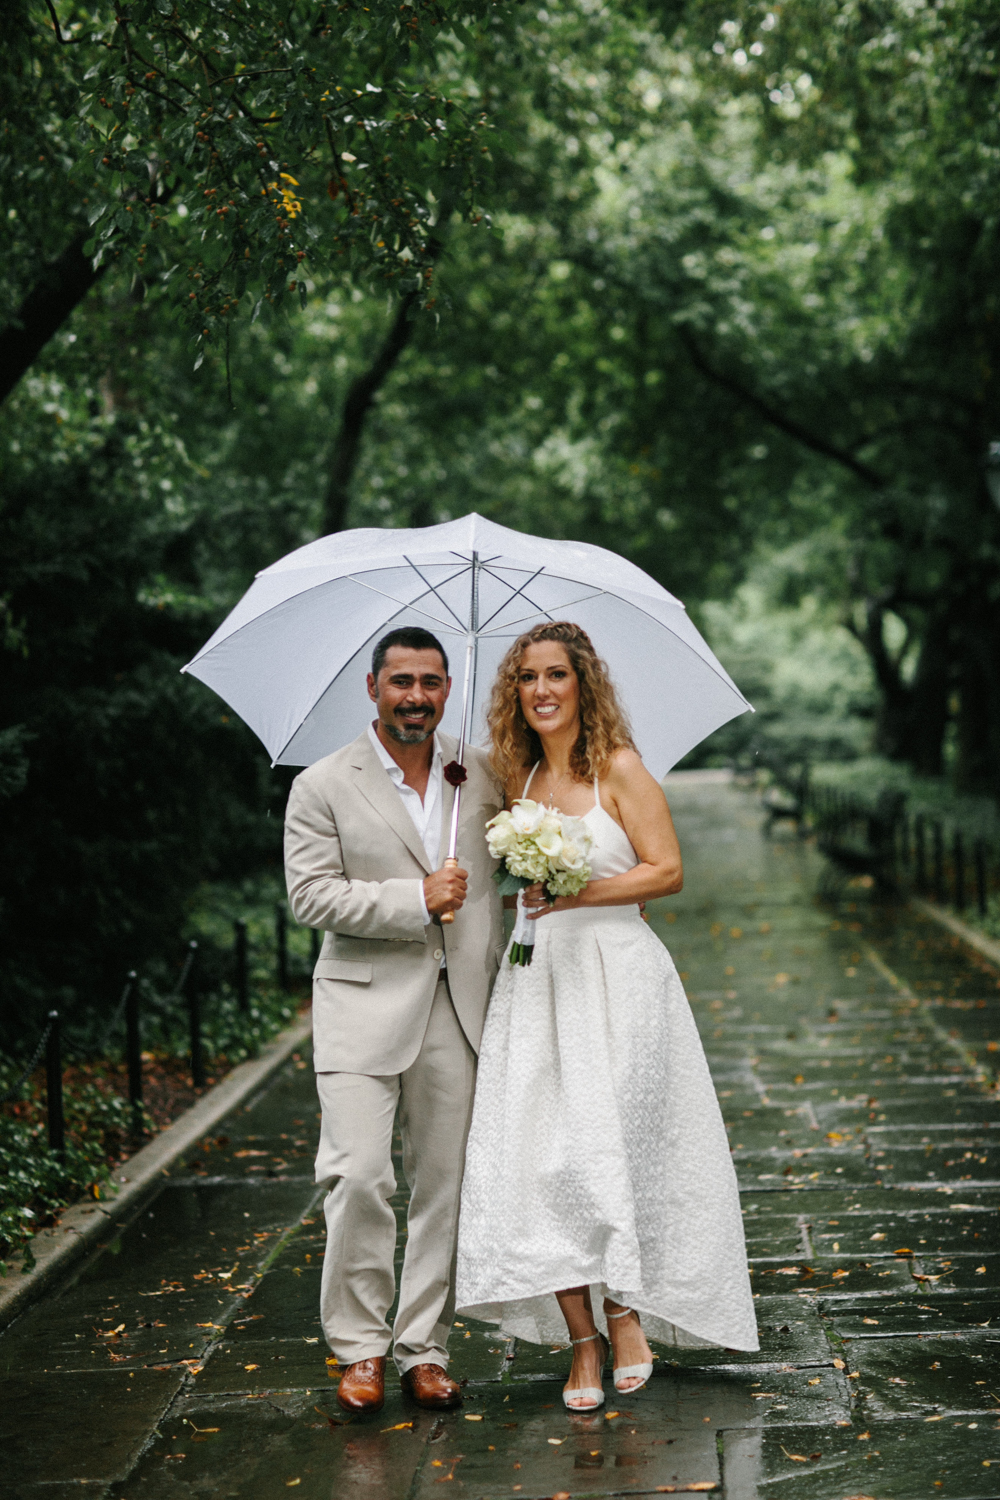 Wedding photography in New York City